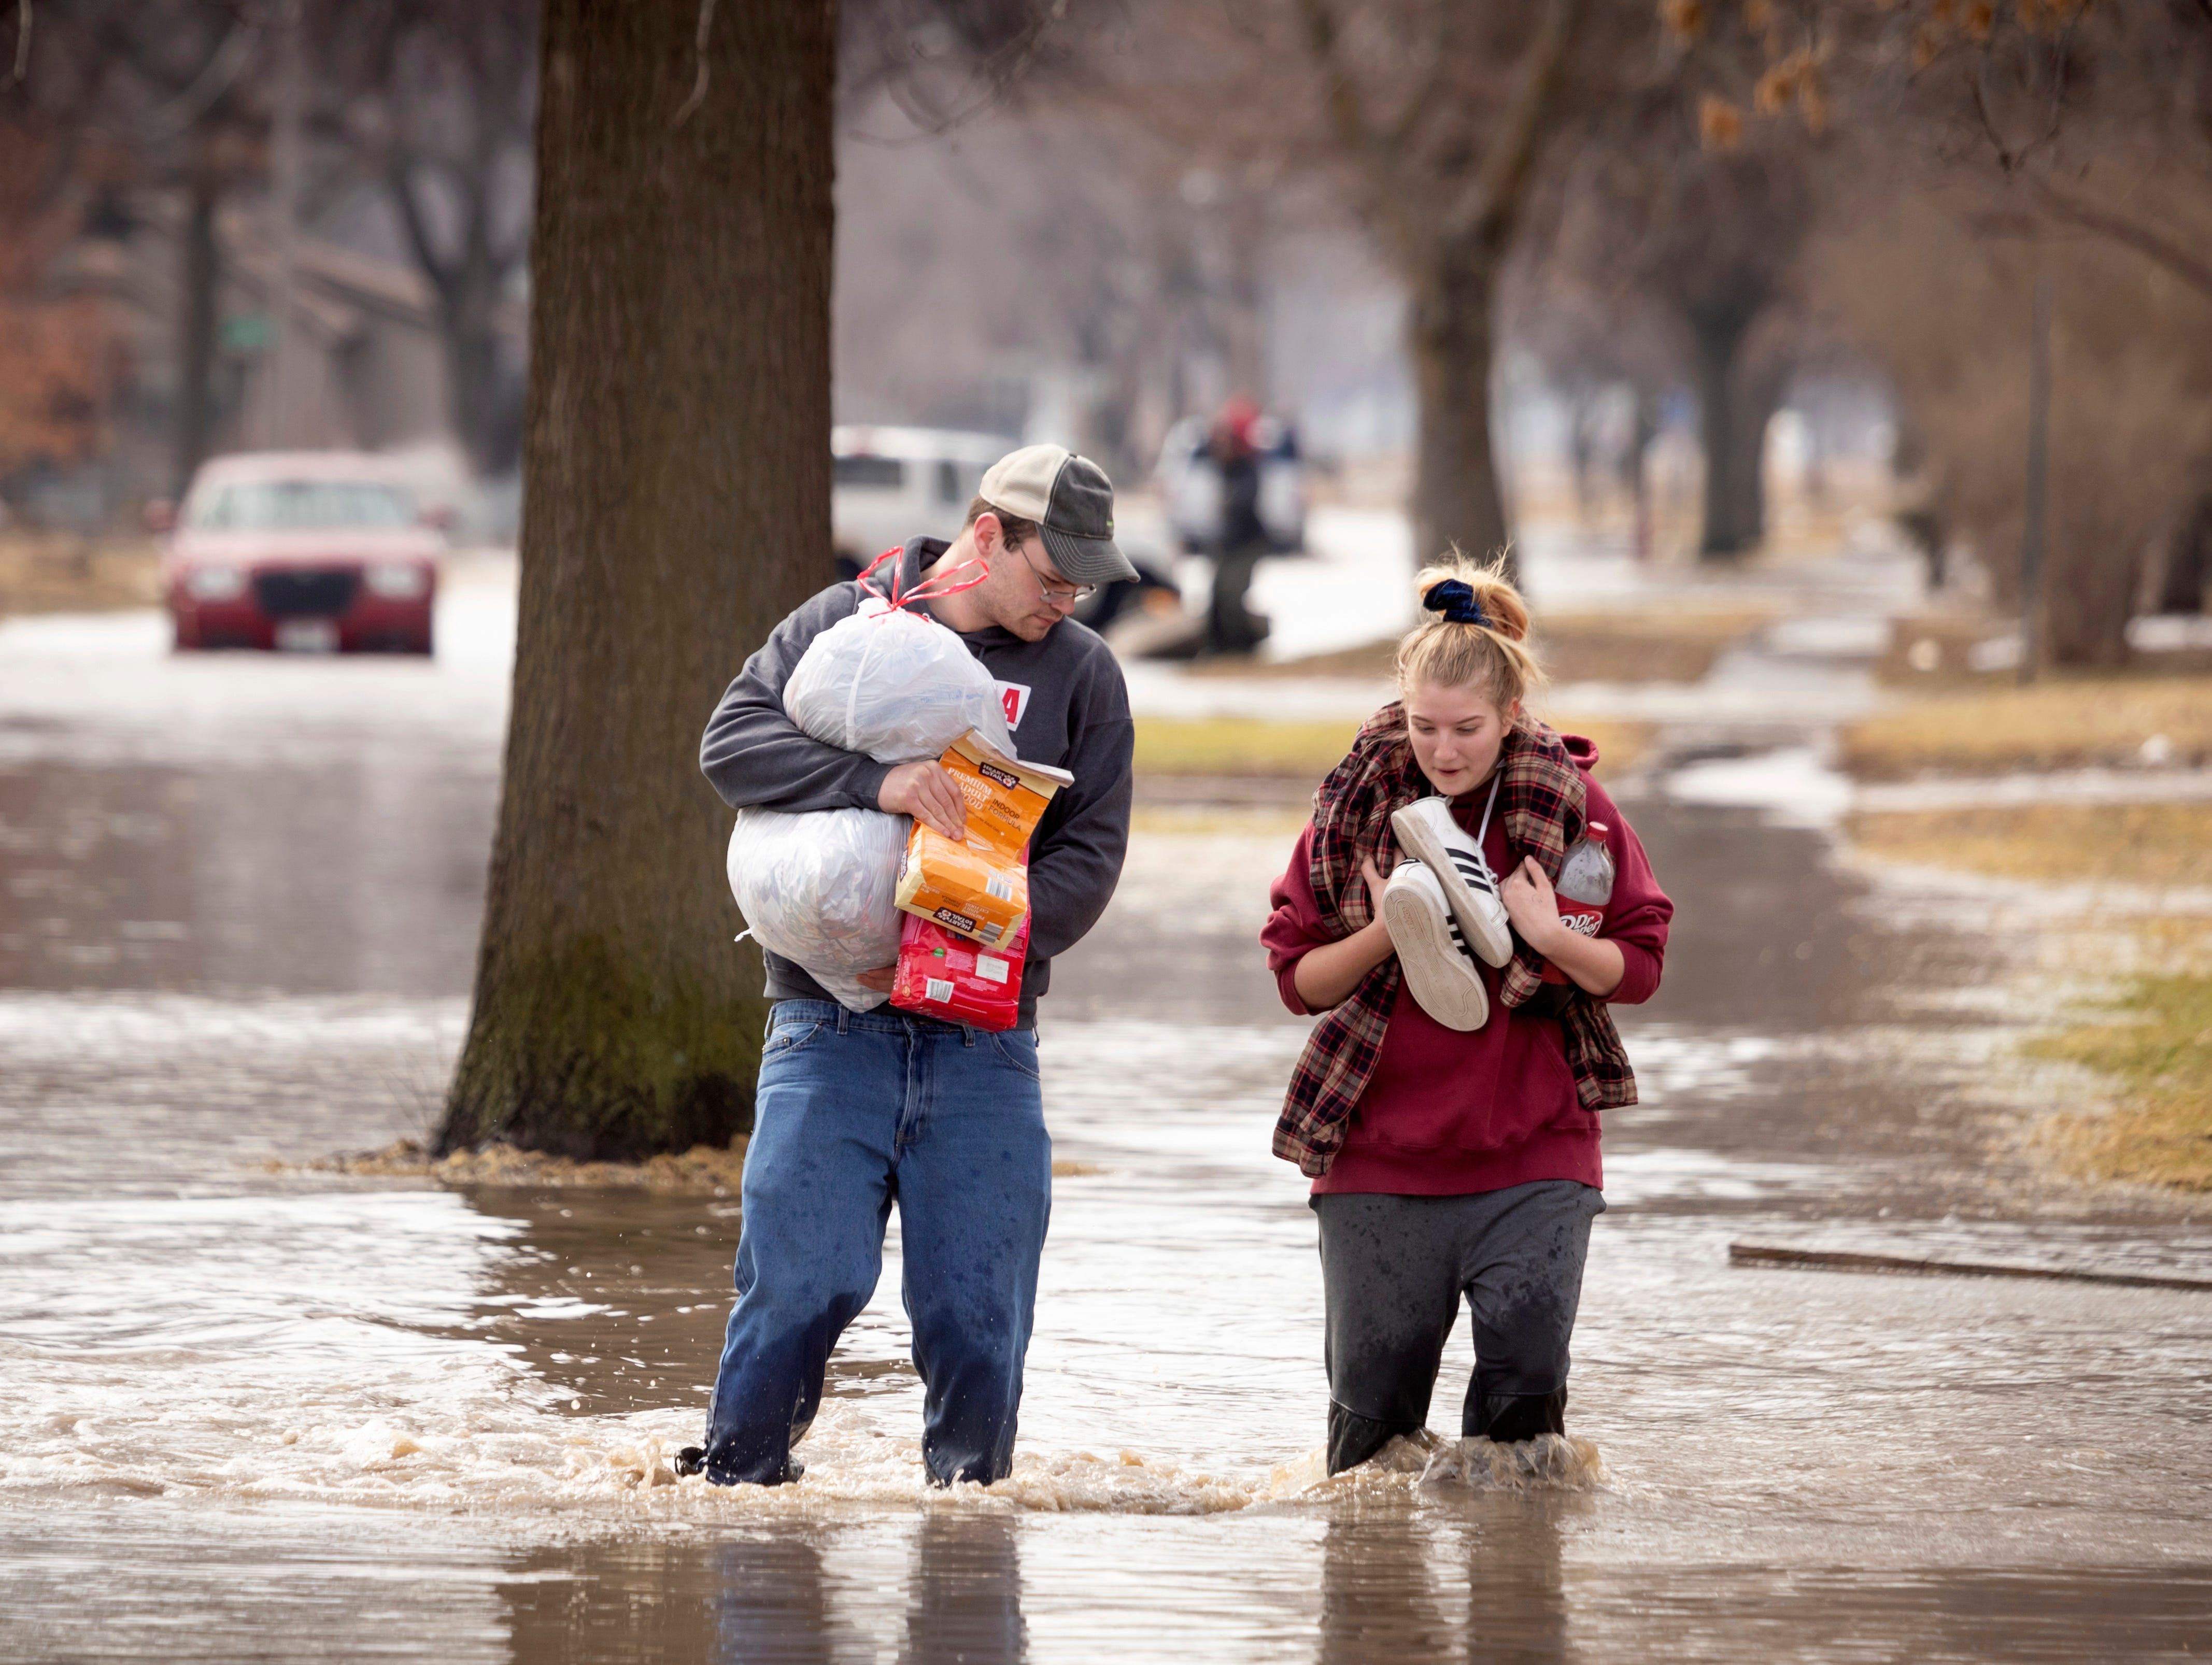 Anthony Thomson, left, and Melody Walton make their way out of a flooded neighborhood Sunday, March 17, 2019, in Fremont, Neb. Hundreds of people were evacuated from their homes in Nebraska and Iowa as levees succumbed to the rush of water.